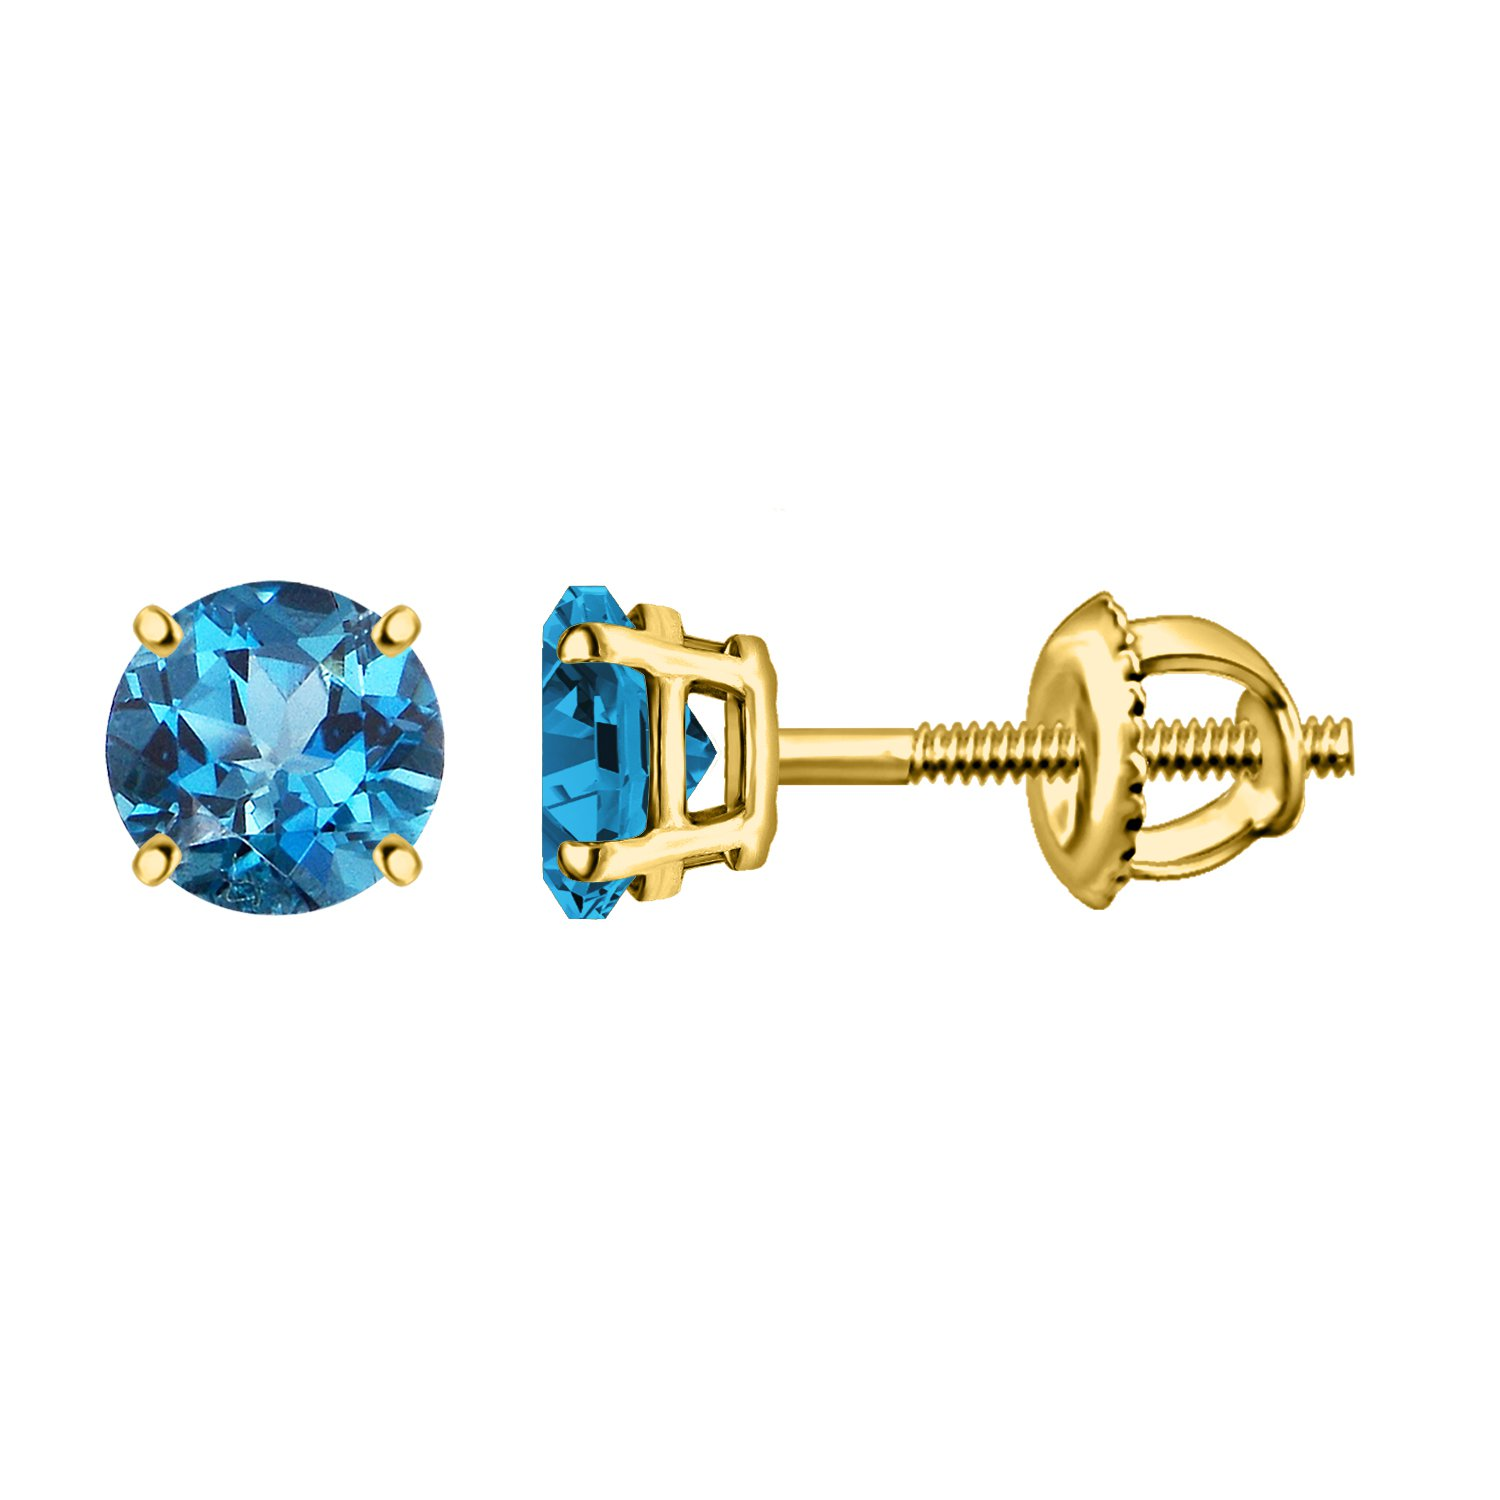 Silver Dew 925 Sterling Silver Yellow Plated Stud Earring In Blue Topaz For Women